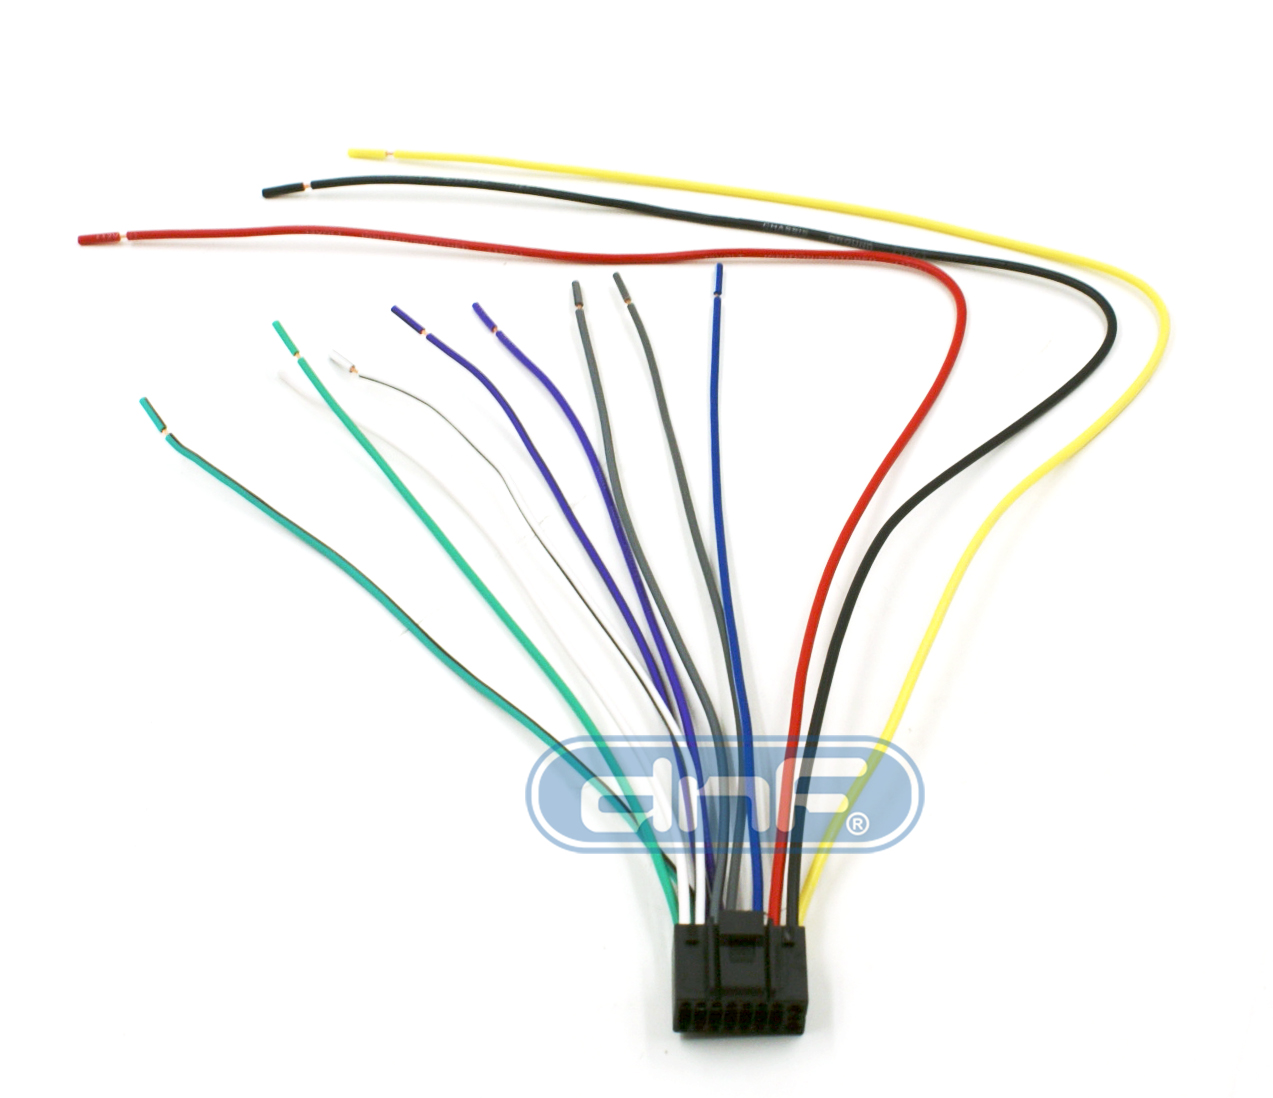 medium resolution of kenwood wiring harness 16 pin kdc 138 kdc 215s kdc 217 ships today wire harness further kenwood kdc mp332 wiring diagram besides kenwood